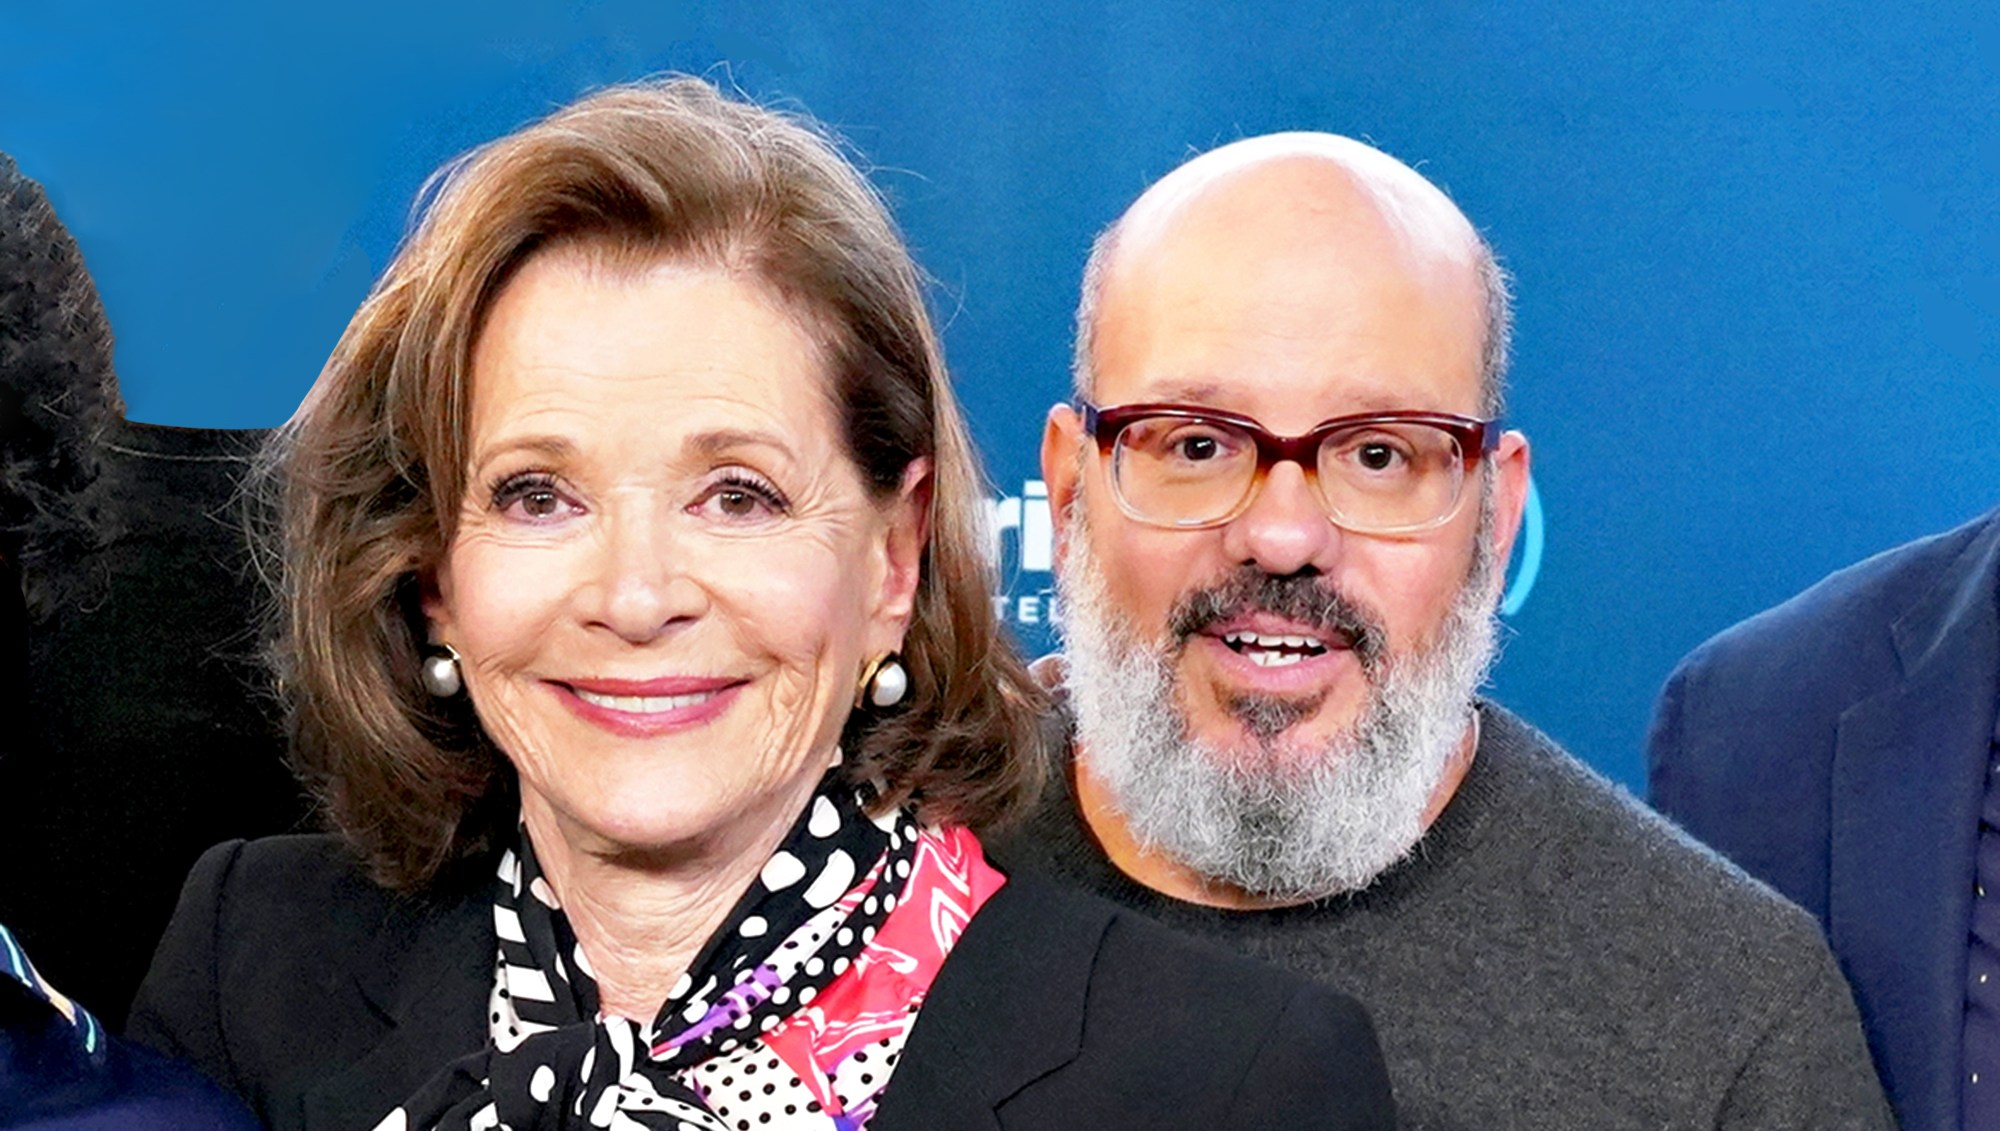 David Cross and Jessica Walter attend the 2018 SiriusXM's Town Hall with the cast of Arrested Development at SiriusXM Studio in New York City.